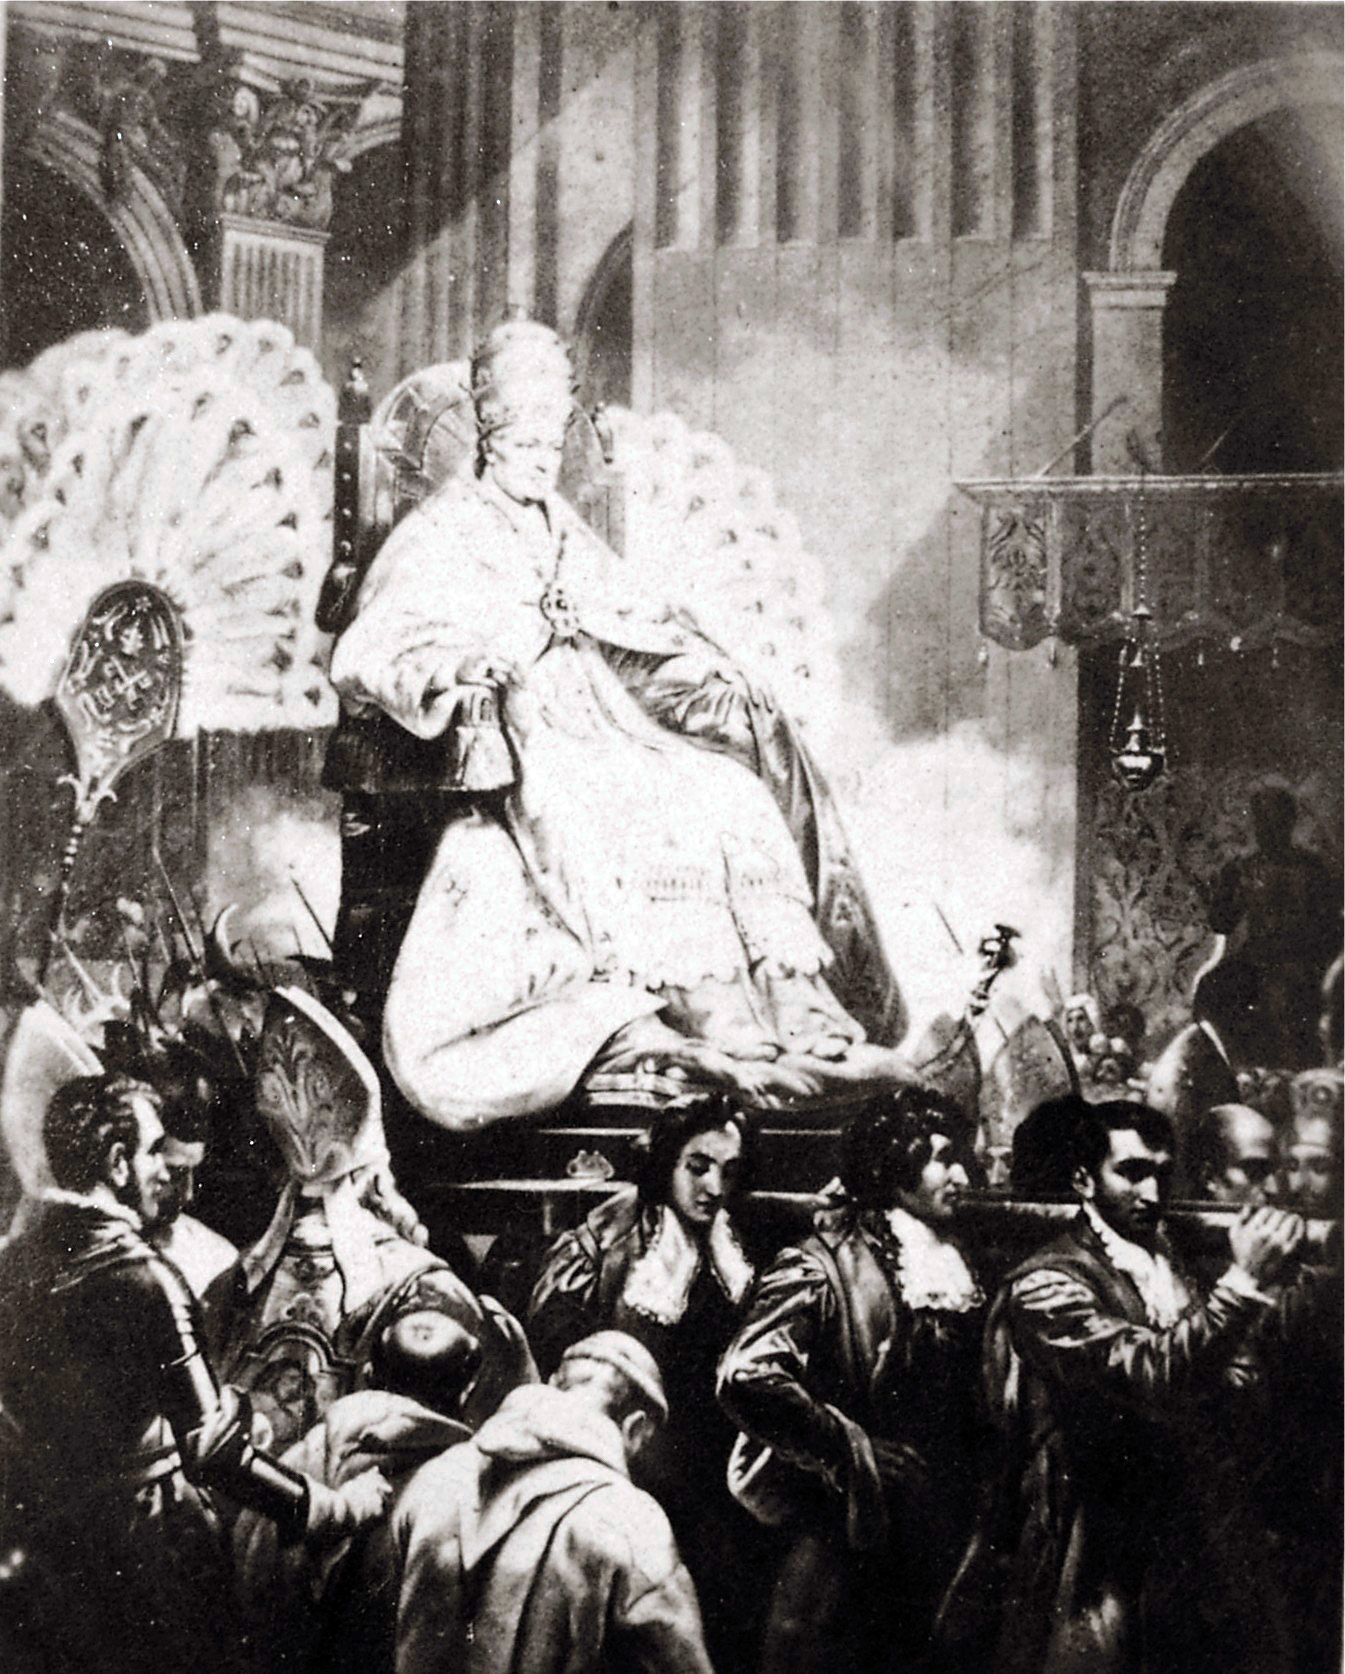 http://upload.wikimedia.org/wikipedia/commons/f/f9/Pius_IX..jpg